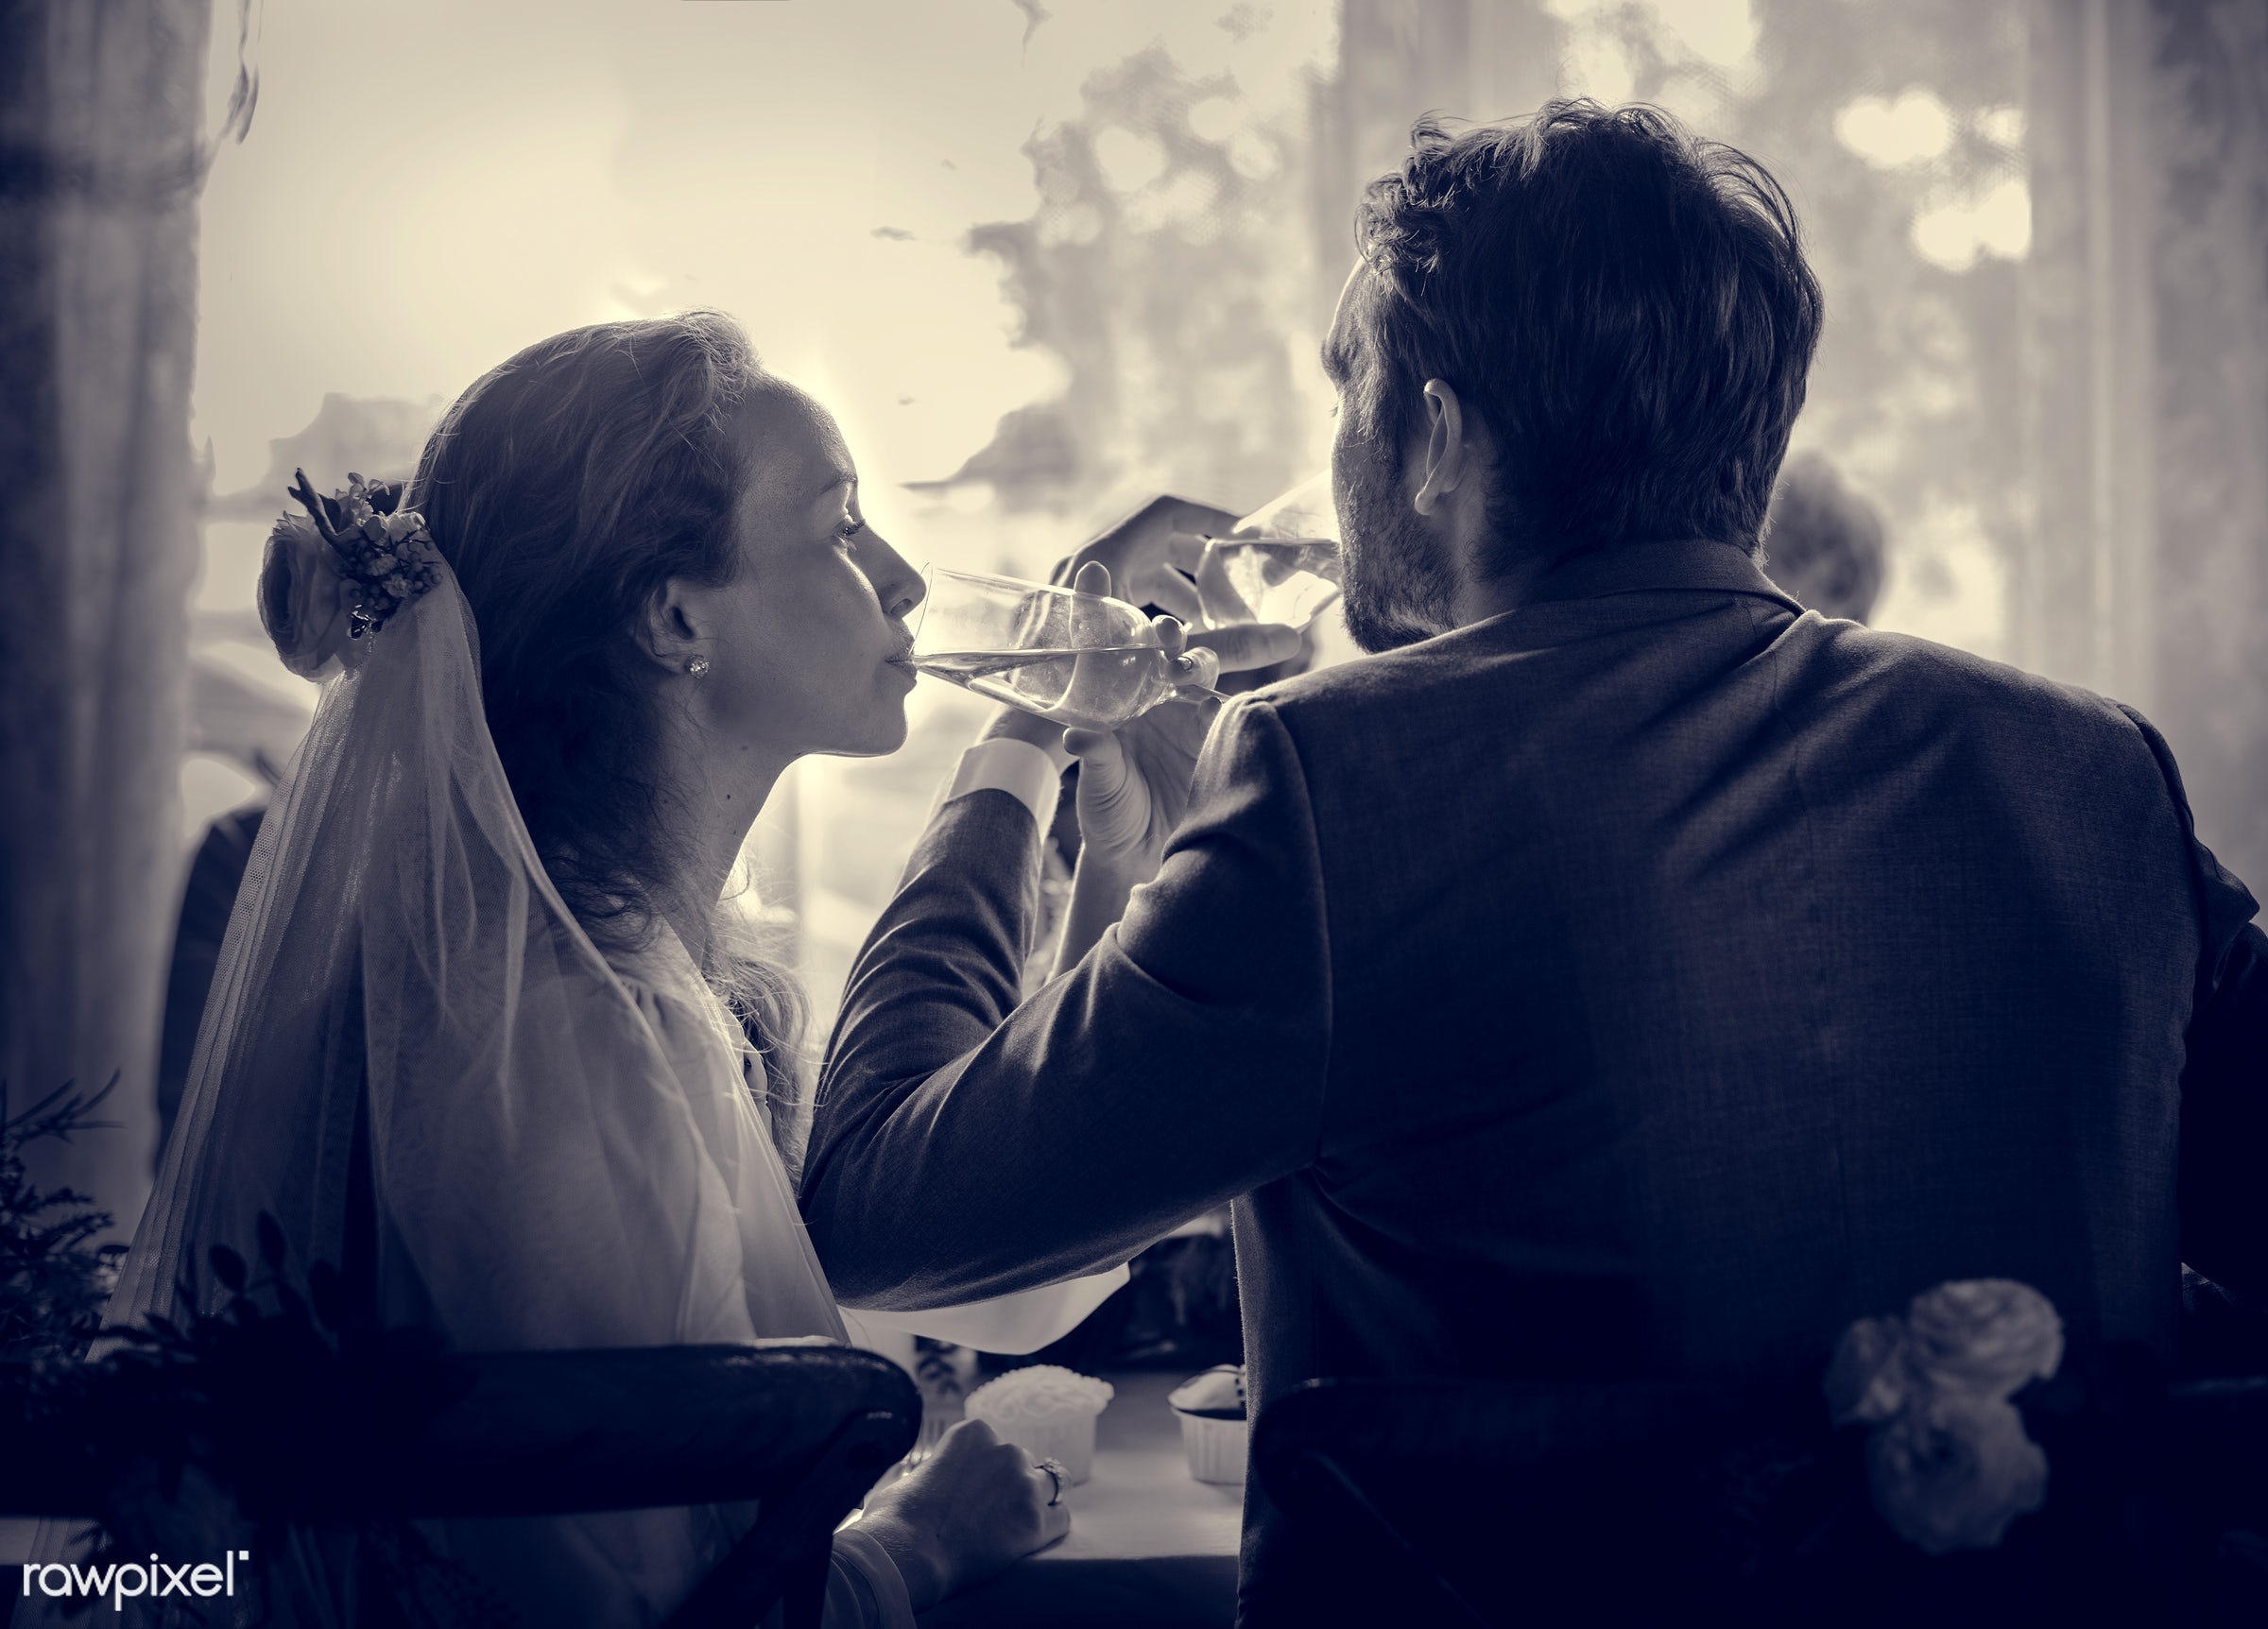 expression, person, drinking, smitten, people, together, love, friends, married, woman, event, family, drink, gathering,...